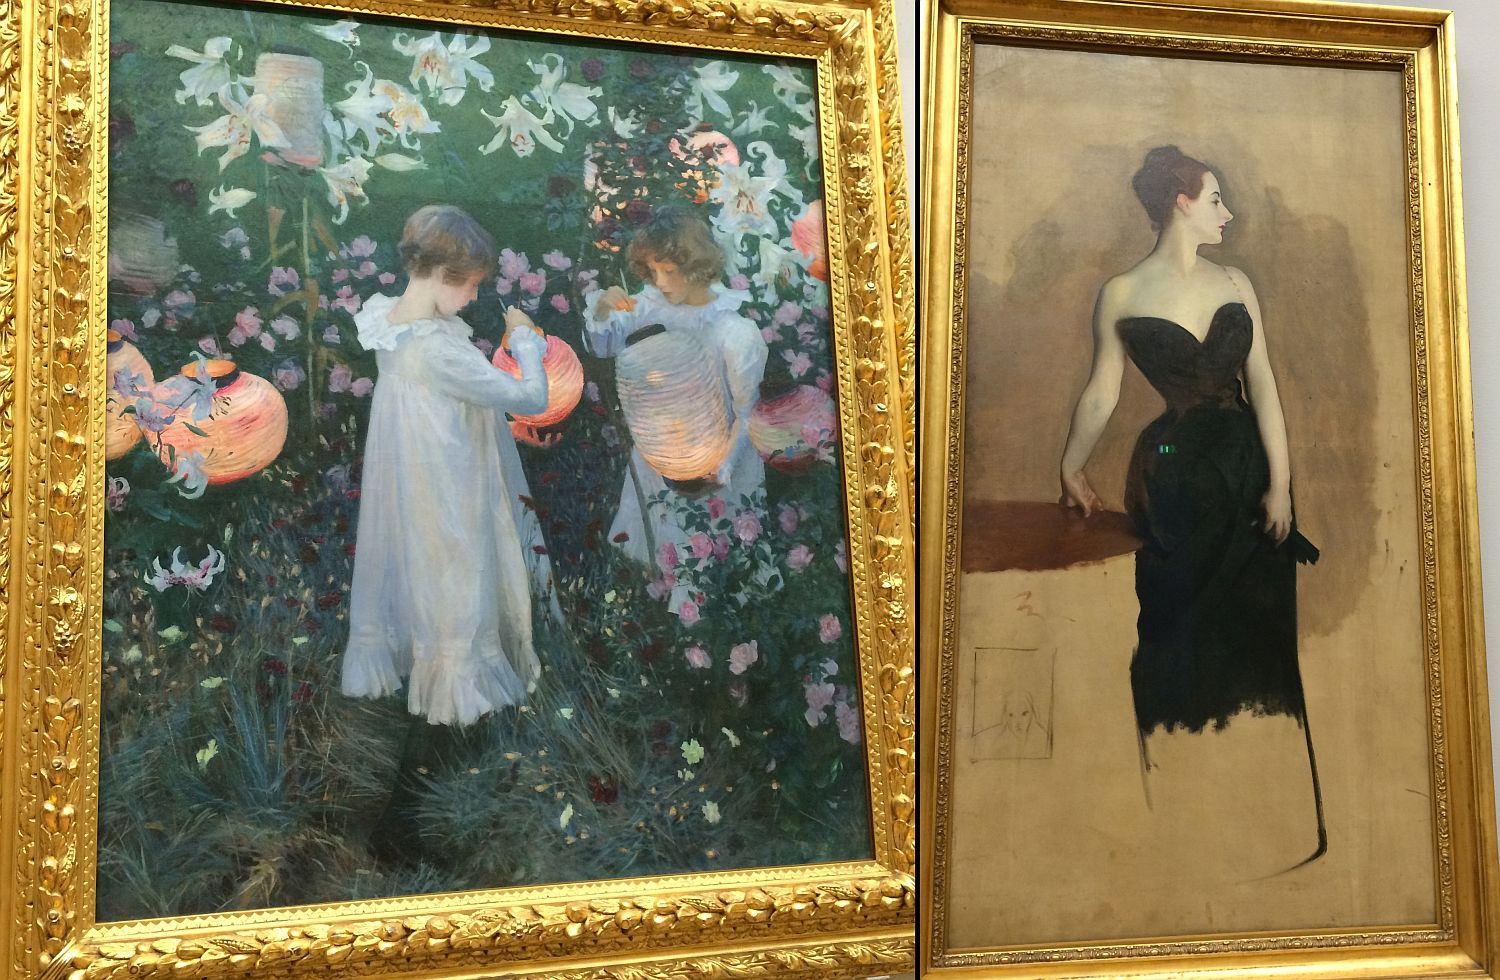 John Singer Sargent's Carnation, Lily, Lily, Rose and the study for Mme Gautreau, the painting of which is in the Chicago Art Institute